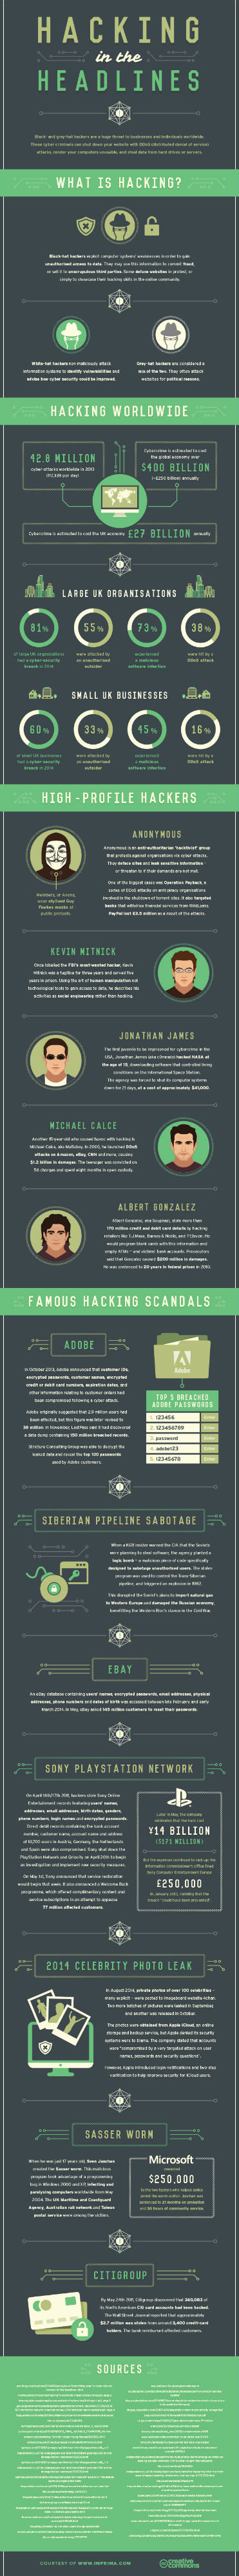 The Big Business of Hacking [Infographic]